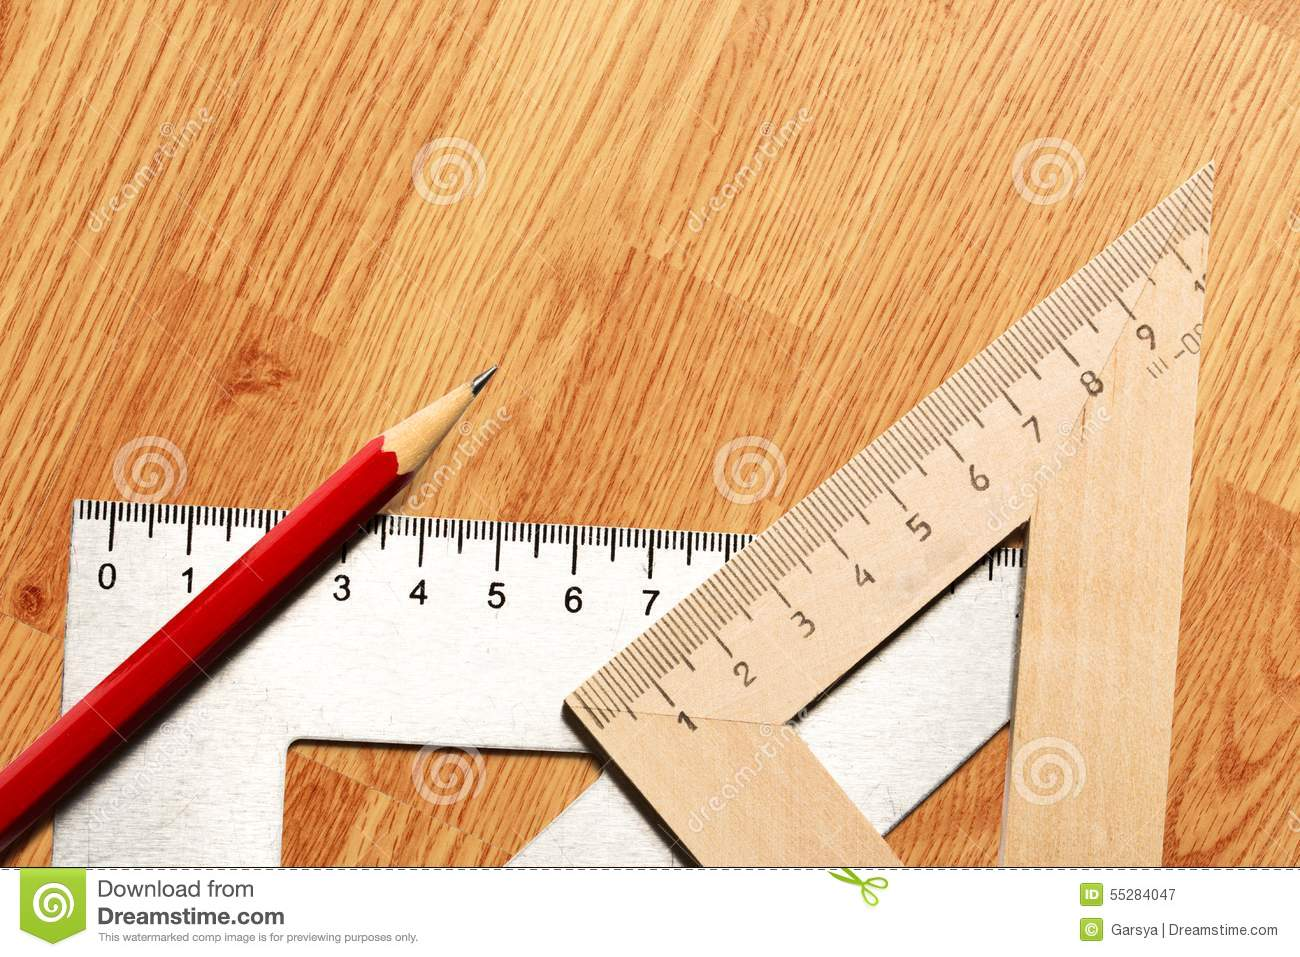 Drafting Tools On White Background Stock Image - Image of collection ...